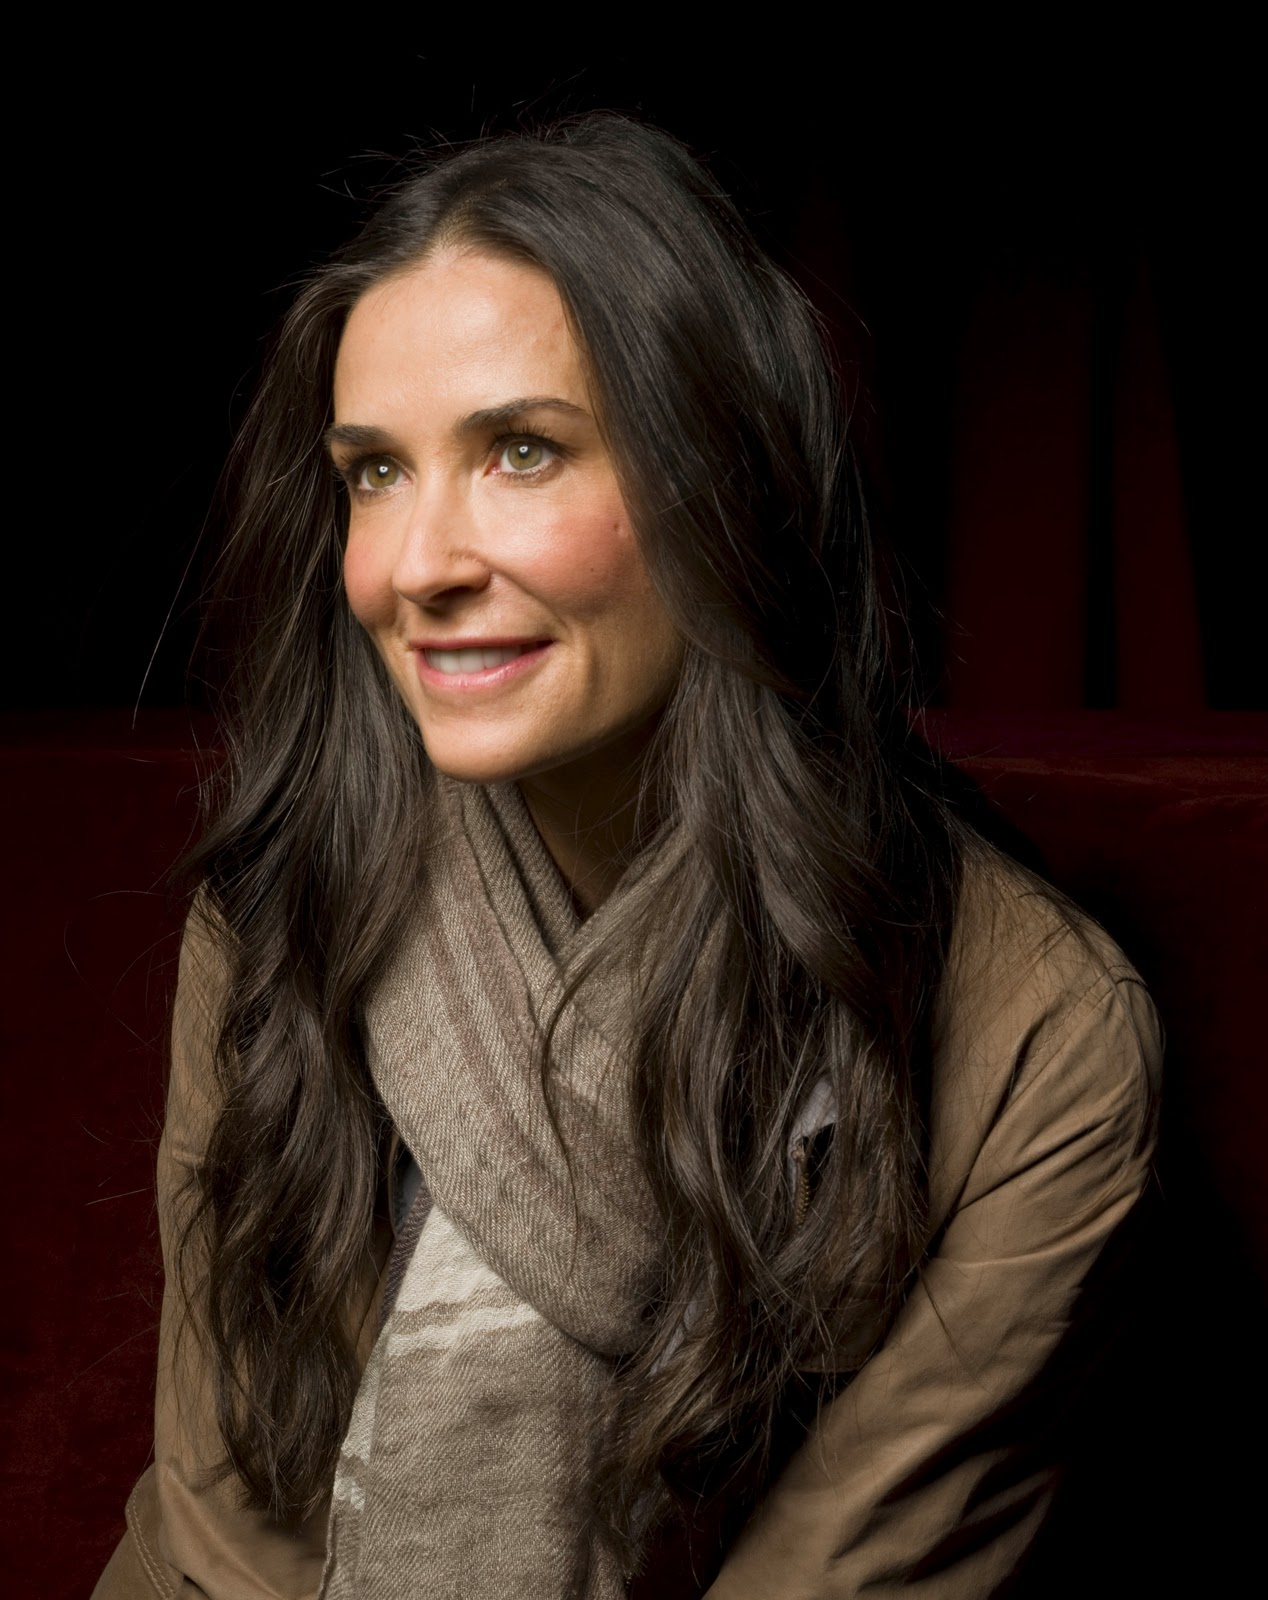 http://4.bp.blogspot.com/-0l4p3d1YNQg/ToQqm8fuSUI/AAAAAAAAAlk/FODWUg52Jmk/s1600/Demi-Moore-pics-photos-images-actress-hairstyle-movies-songs+1.jpg